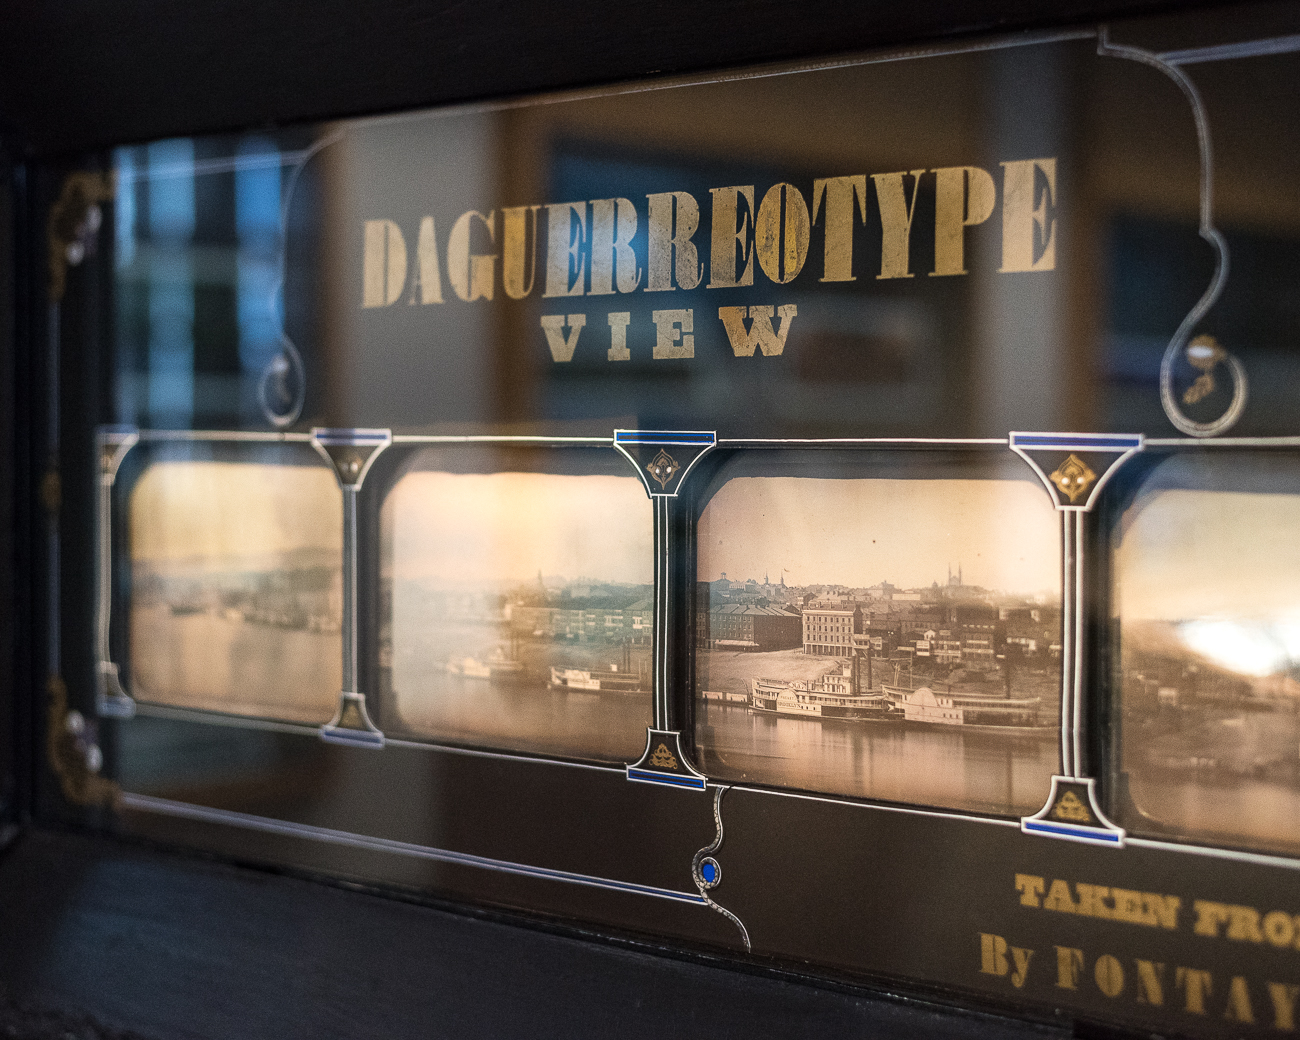 The original 8-panel Daguerreotype created in 1841 is preserved and on display in the exhibit. / Image: Phil Armstrong, Cincinnati Refined // Published: 10.4.18